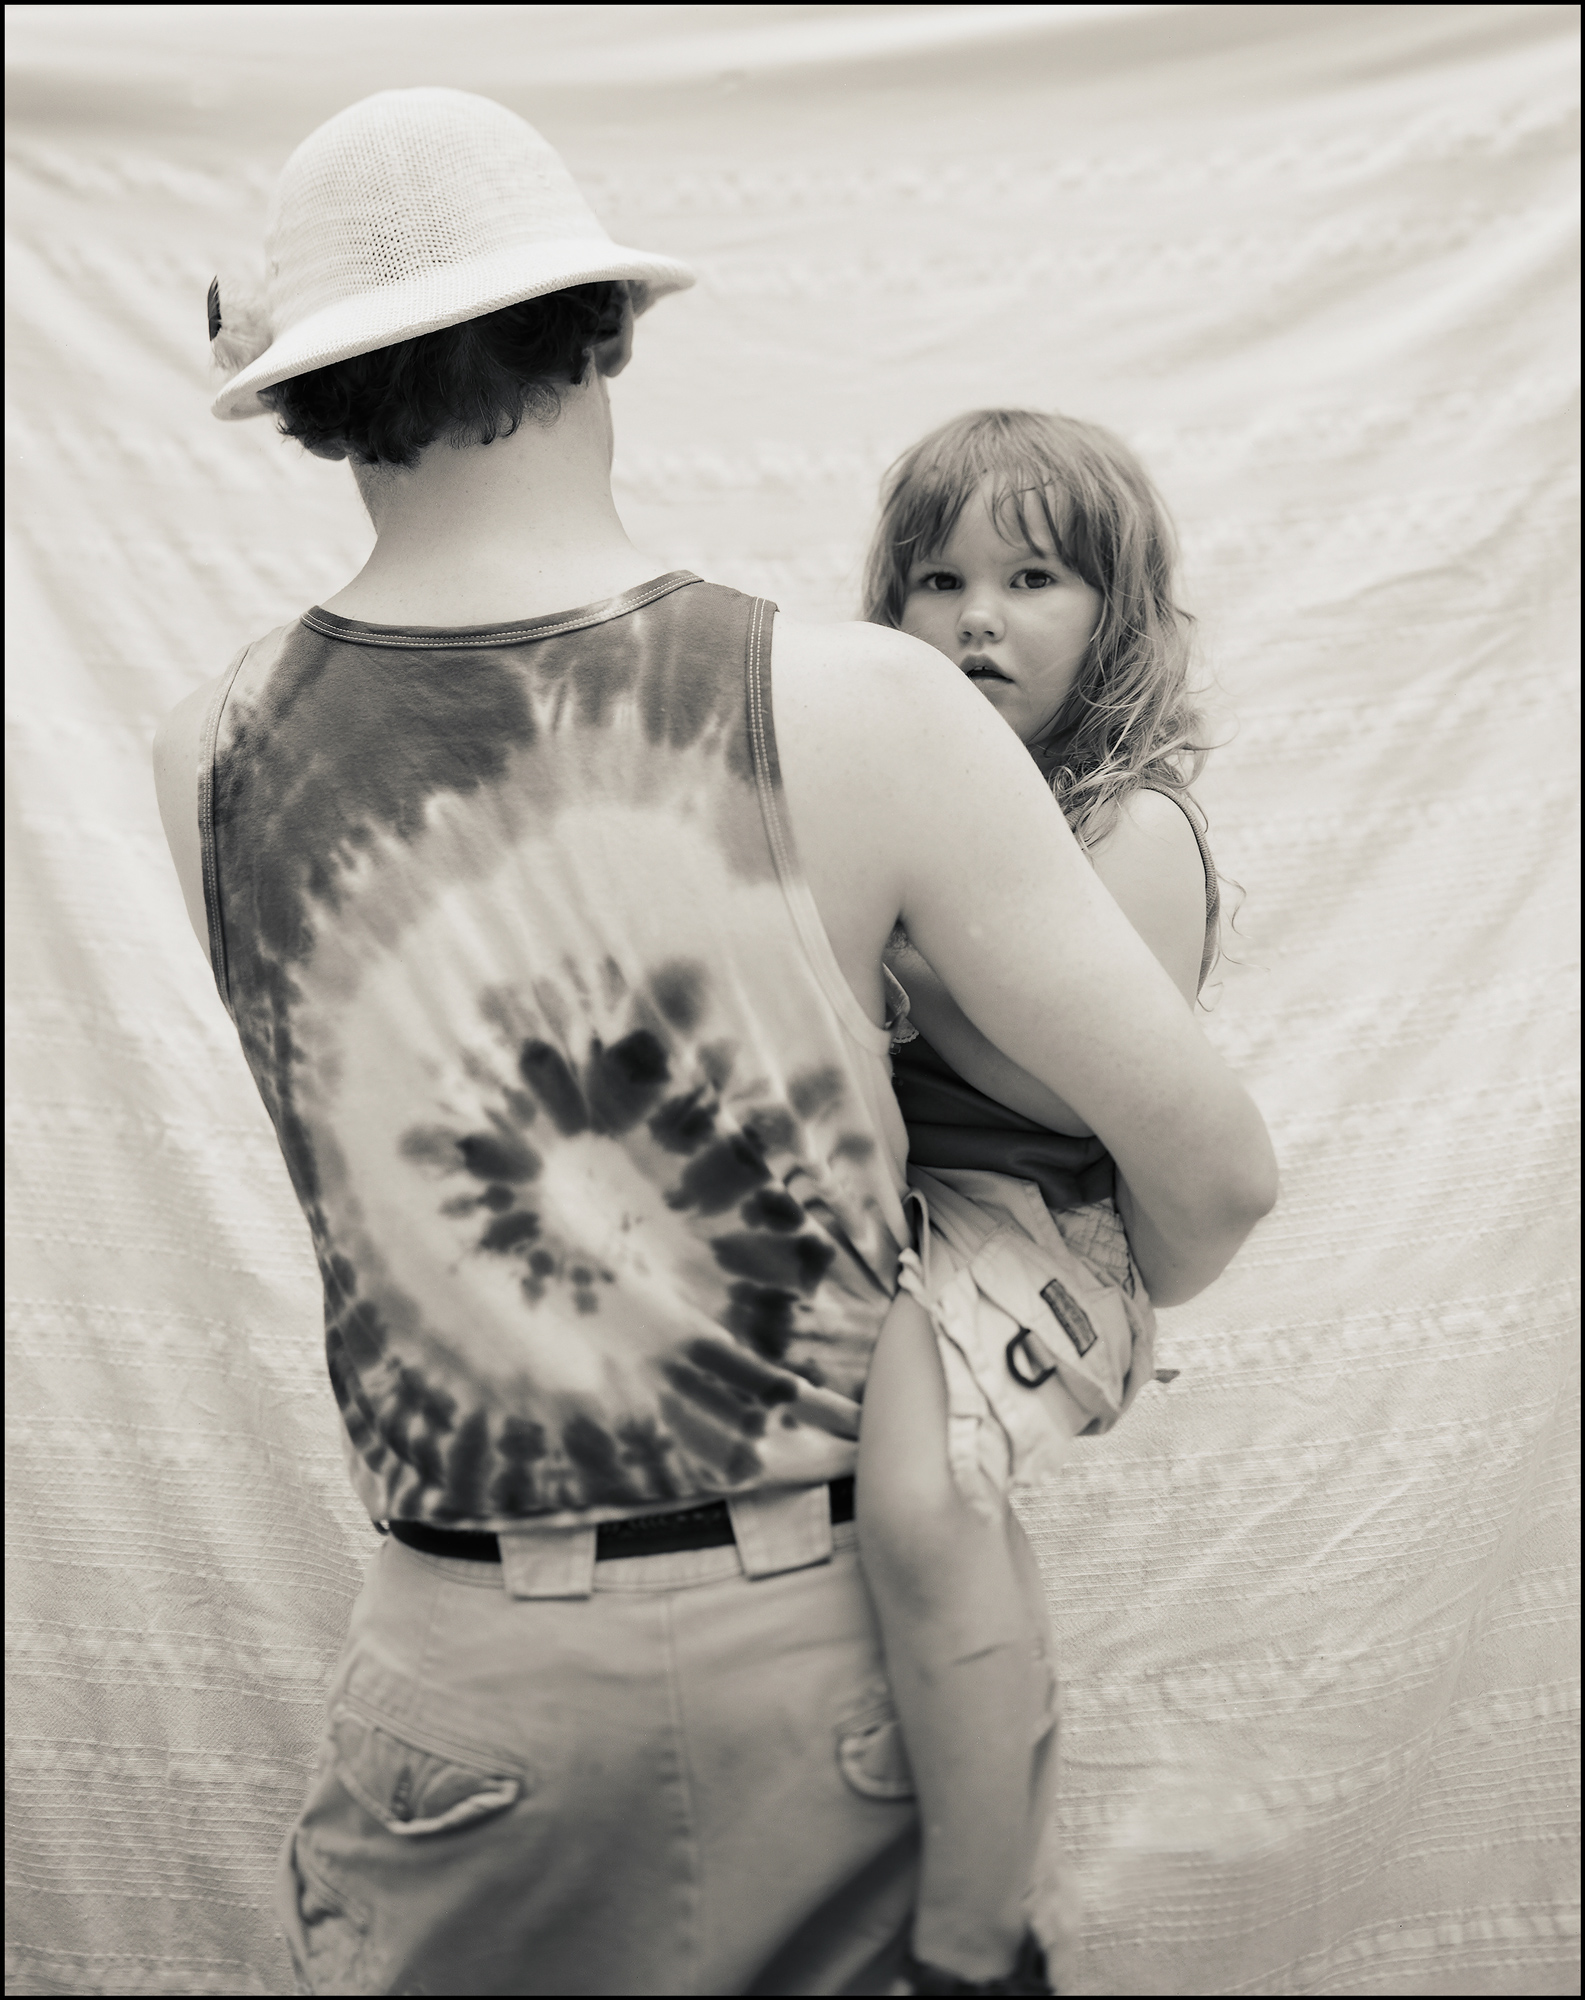 FolkFestival_FatherAndDaughter_border_web